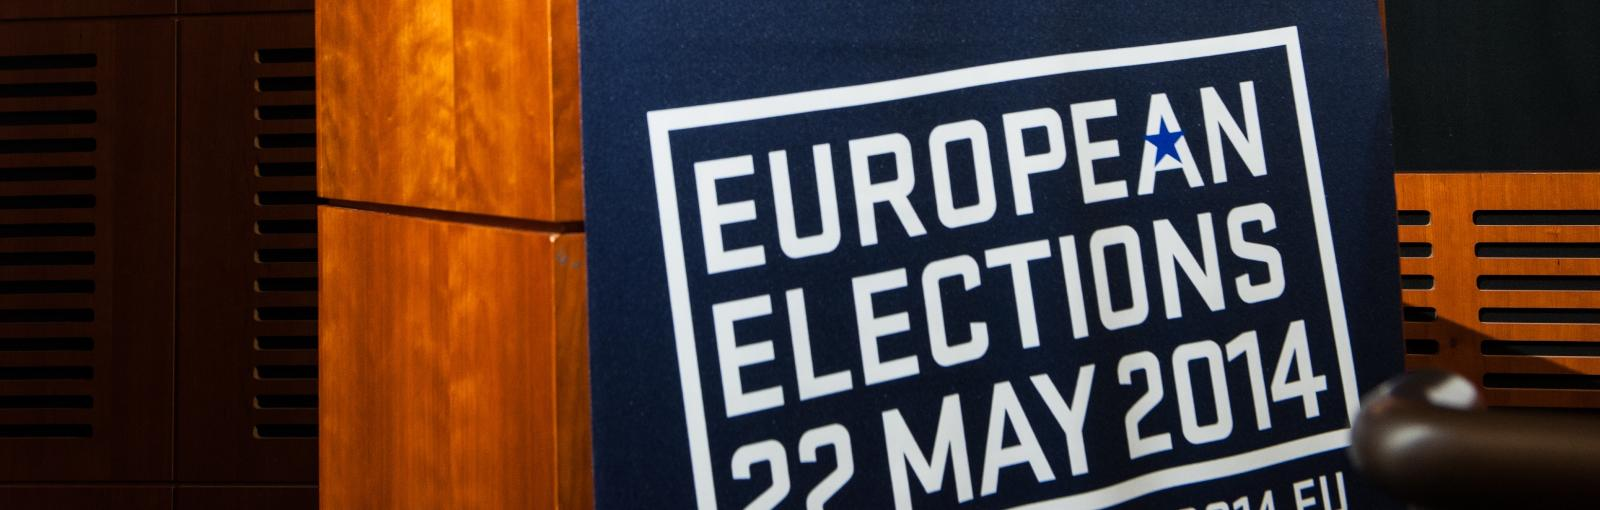 European Elections header